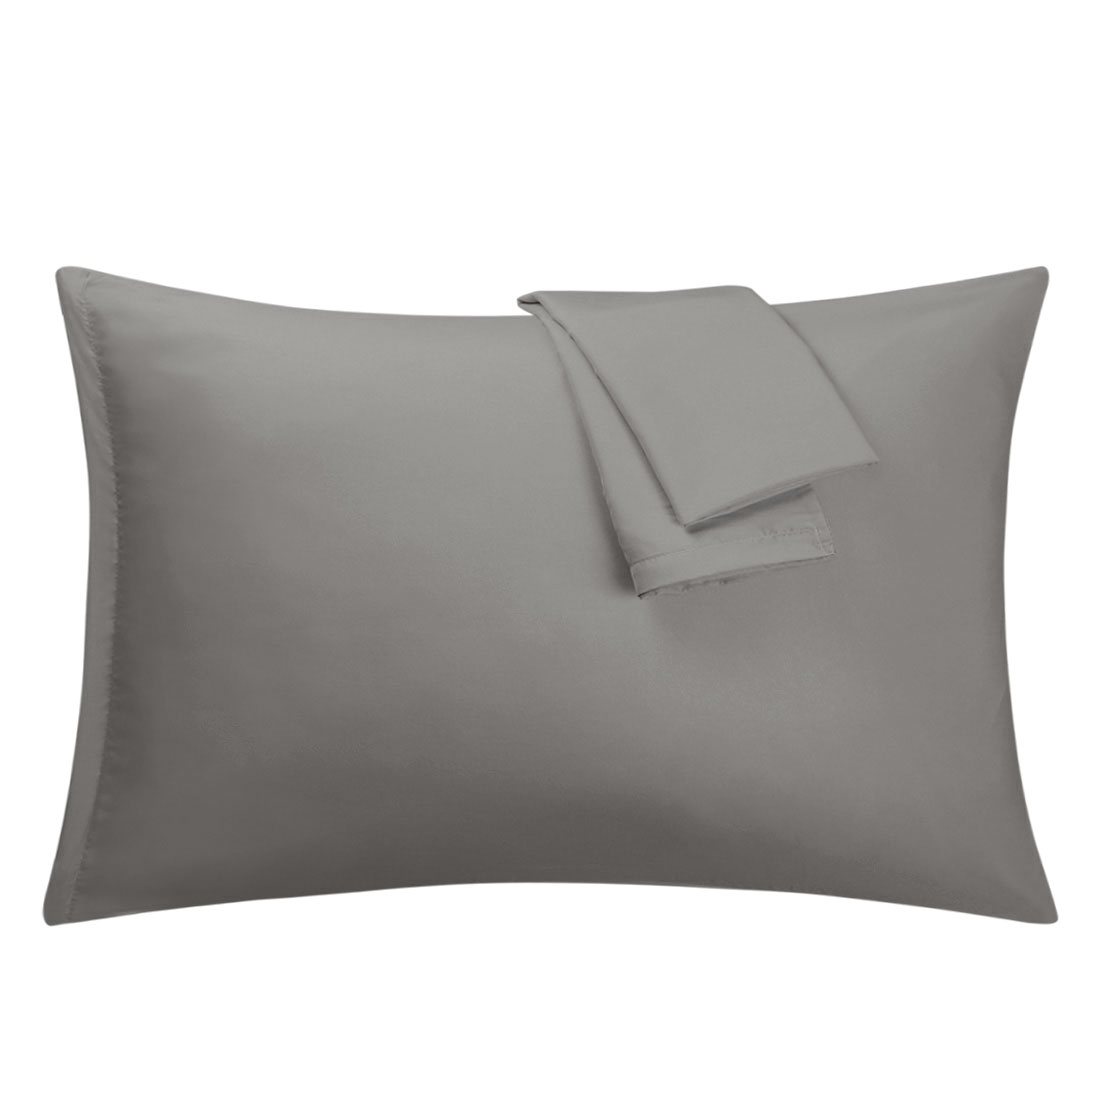 Grey Pillowcases Soft Microfiber Pillow Case Cover with Zipper Queen, 2 Pack